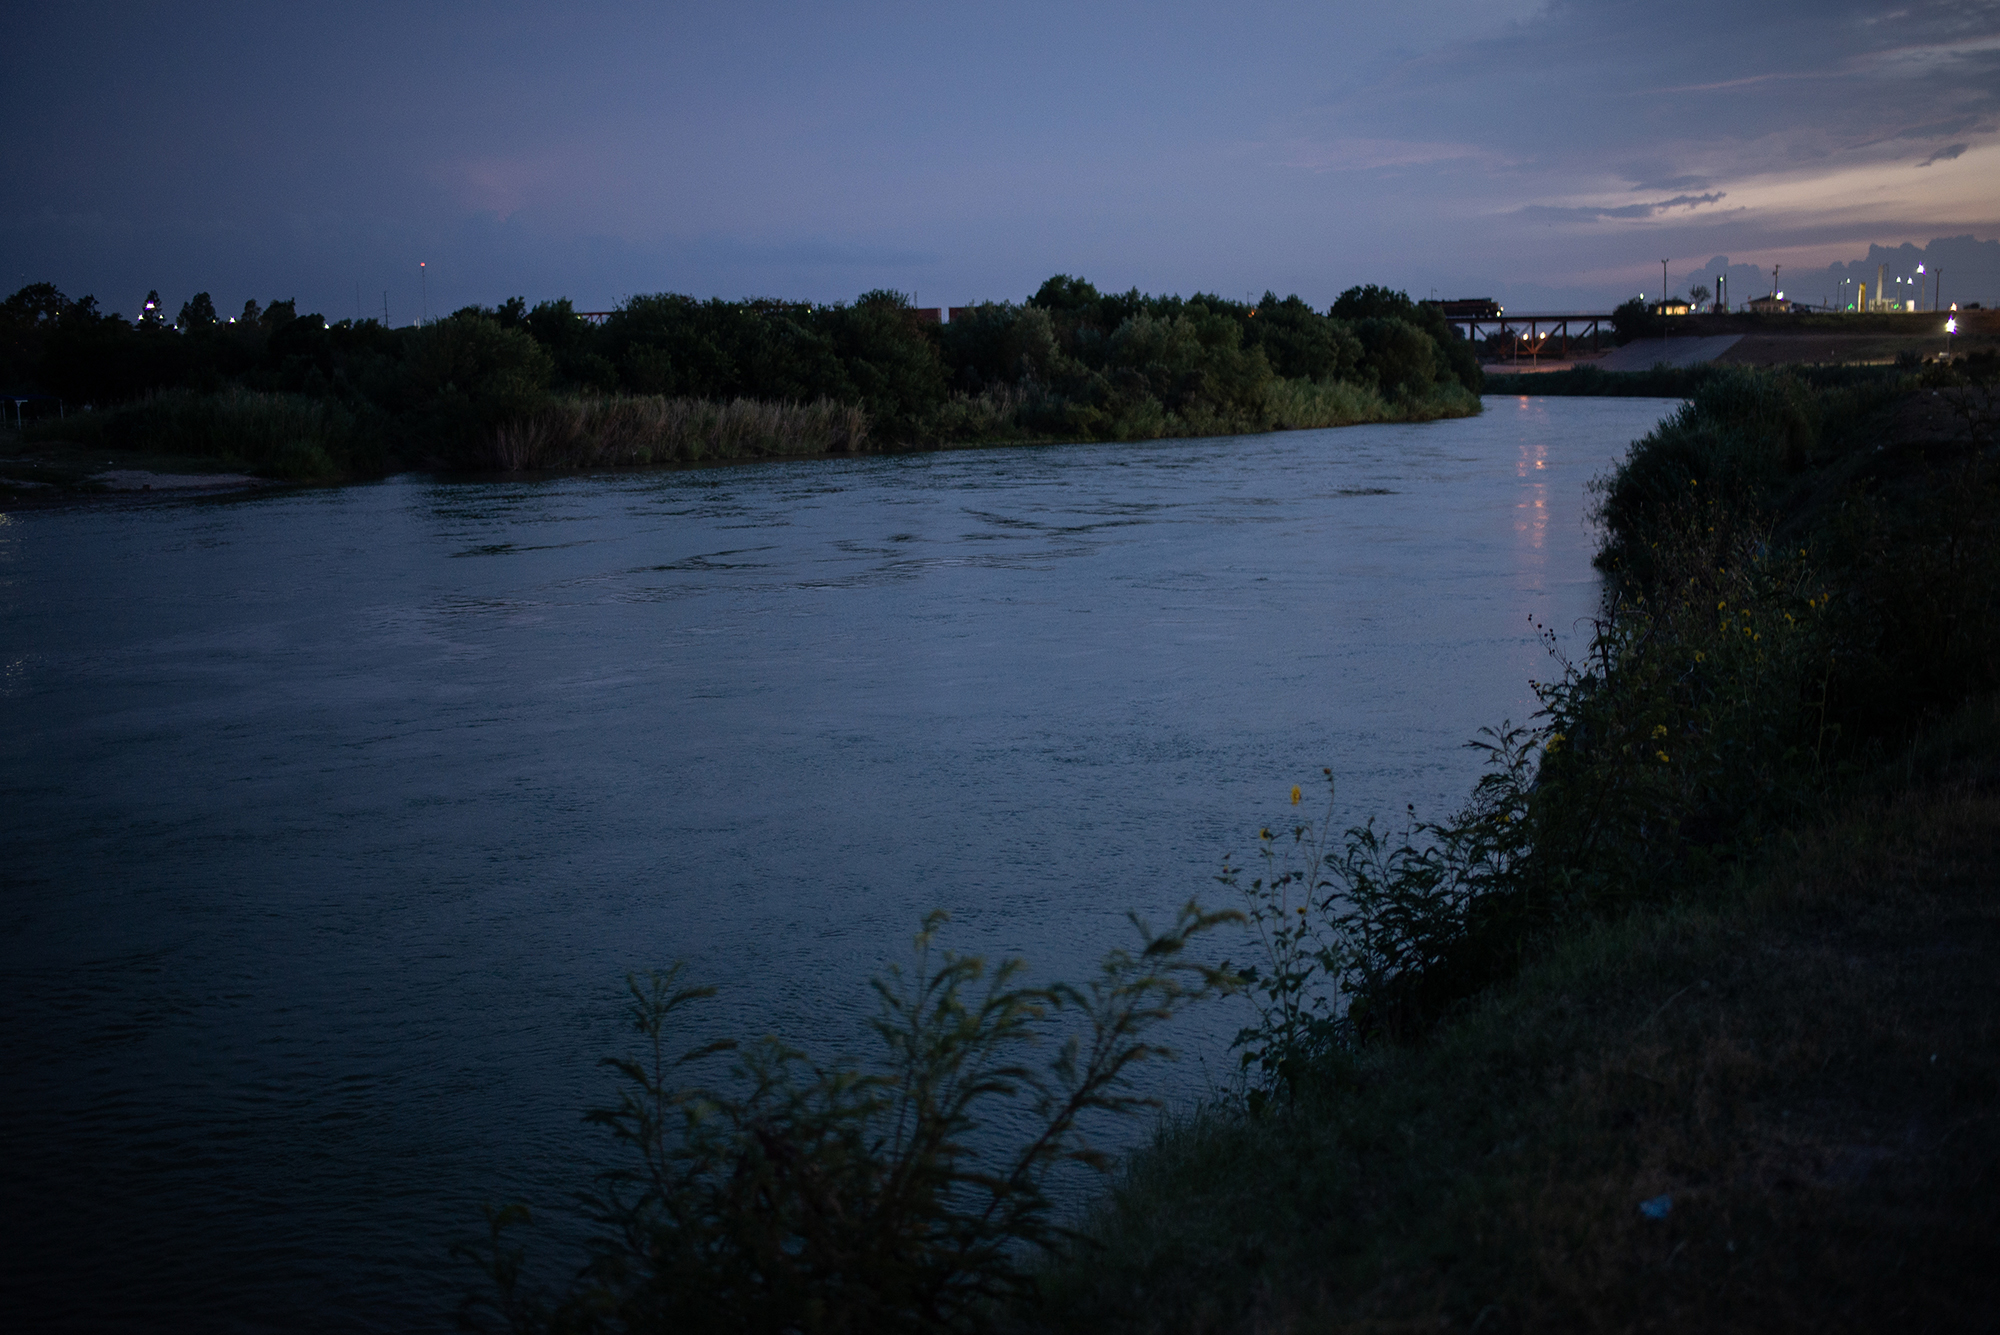 Night view of the Rio Grande that separates the United States from Mexico. This river is well known for being a natural border, and to which many people submerge to reach the United States, escaping the violence and bad economic situation in their countries. Laredo, Texas, US. June 25th, 2018. Photographer: Luján Agusti.